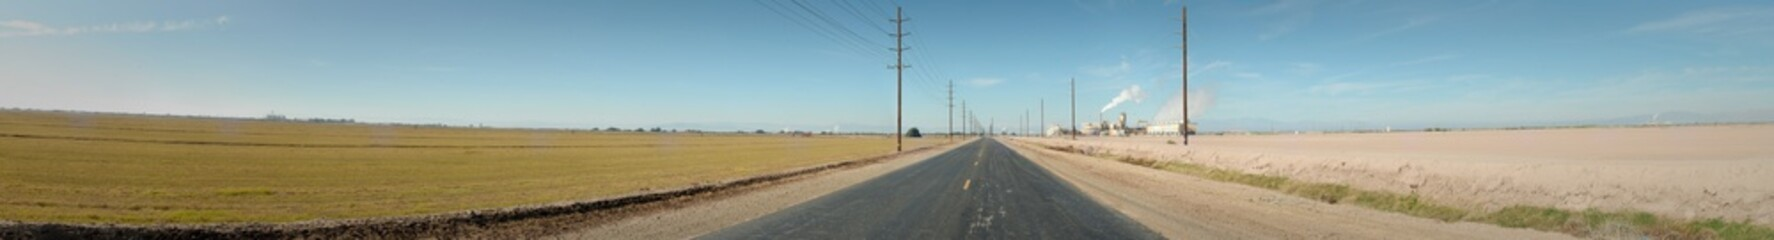 The open roads of Imperial County in California. Wall mural